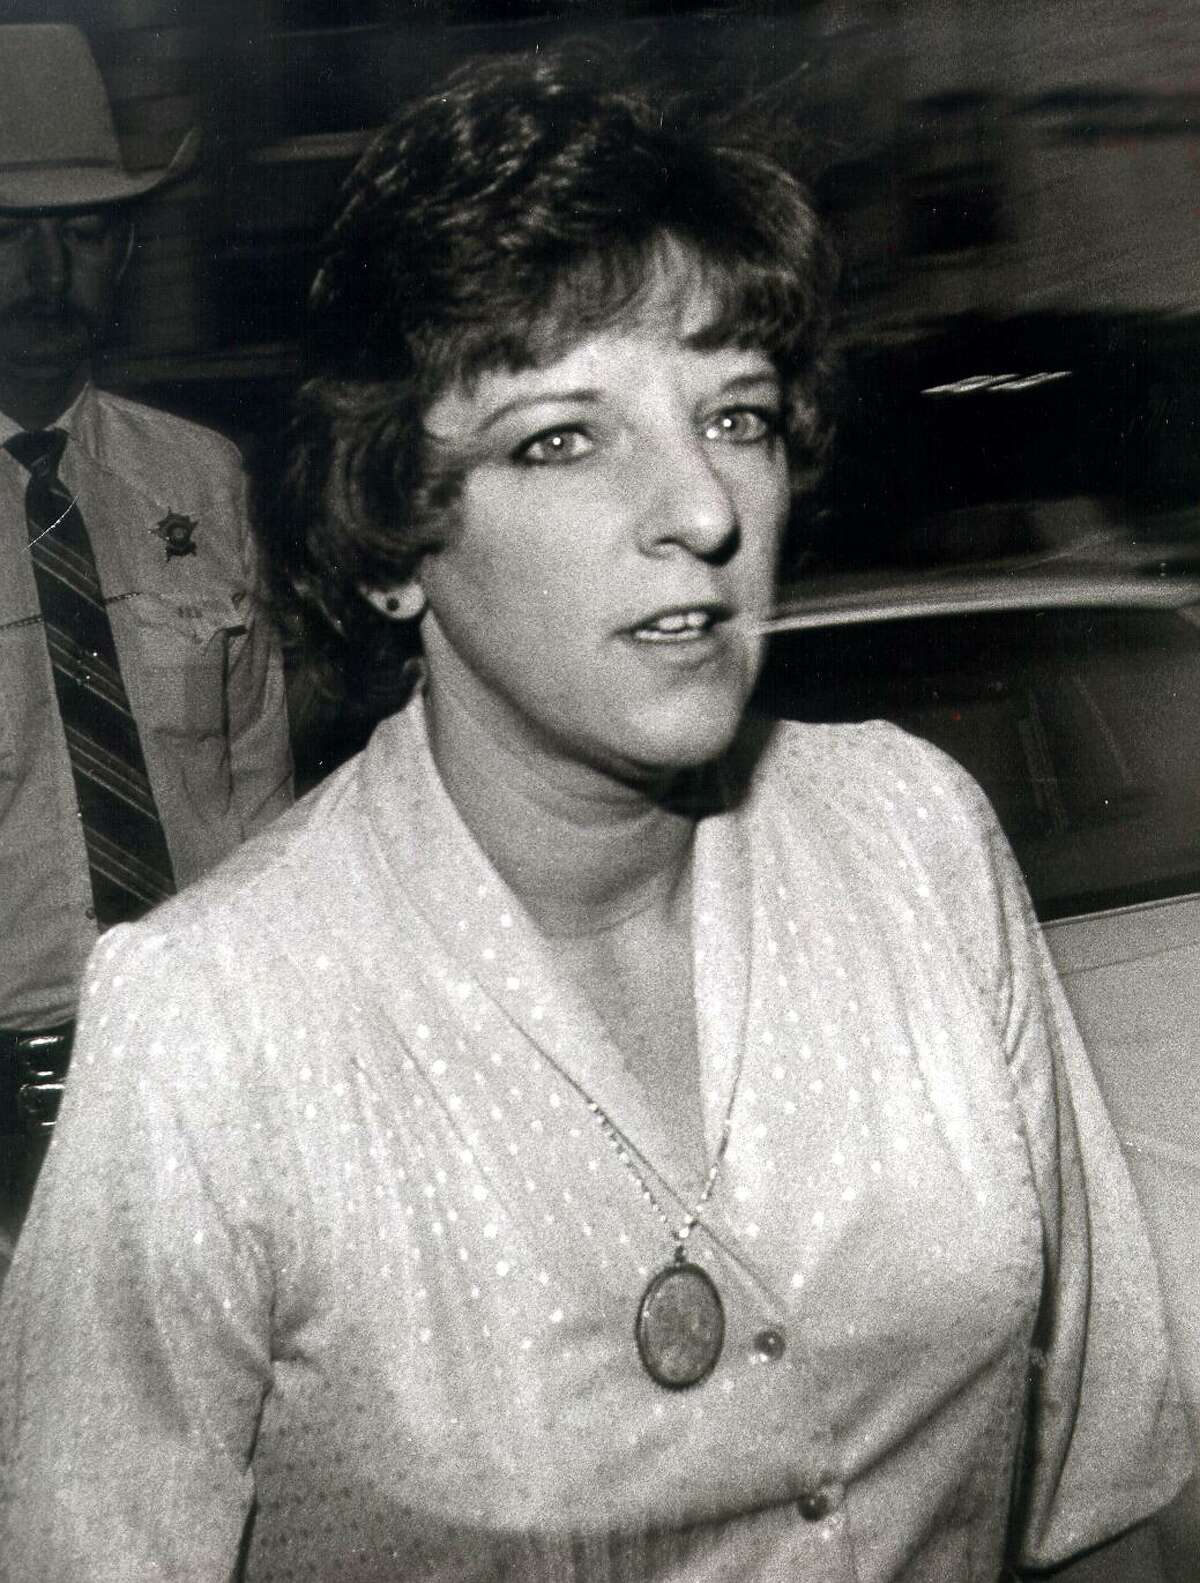 Genene Jones arrives at the courthouse in Georgetown, north of Austin, on Jan. 16, 1984. Jones, then a pediatric nurse working in San Antonio and Kerrville, was convicted in 1984 of killing 15-month-old Chelsea McClellan. In 2018, she was charged with murder in five other children's deaths.